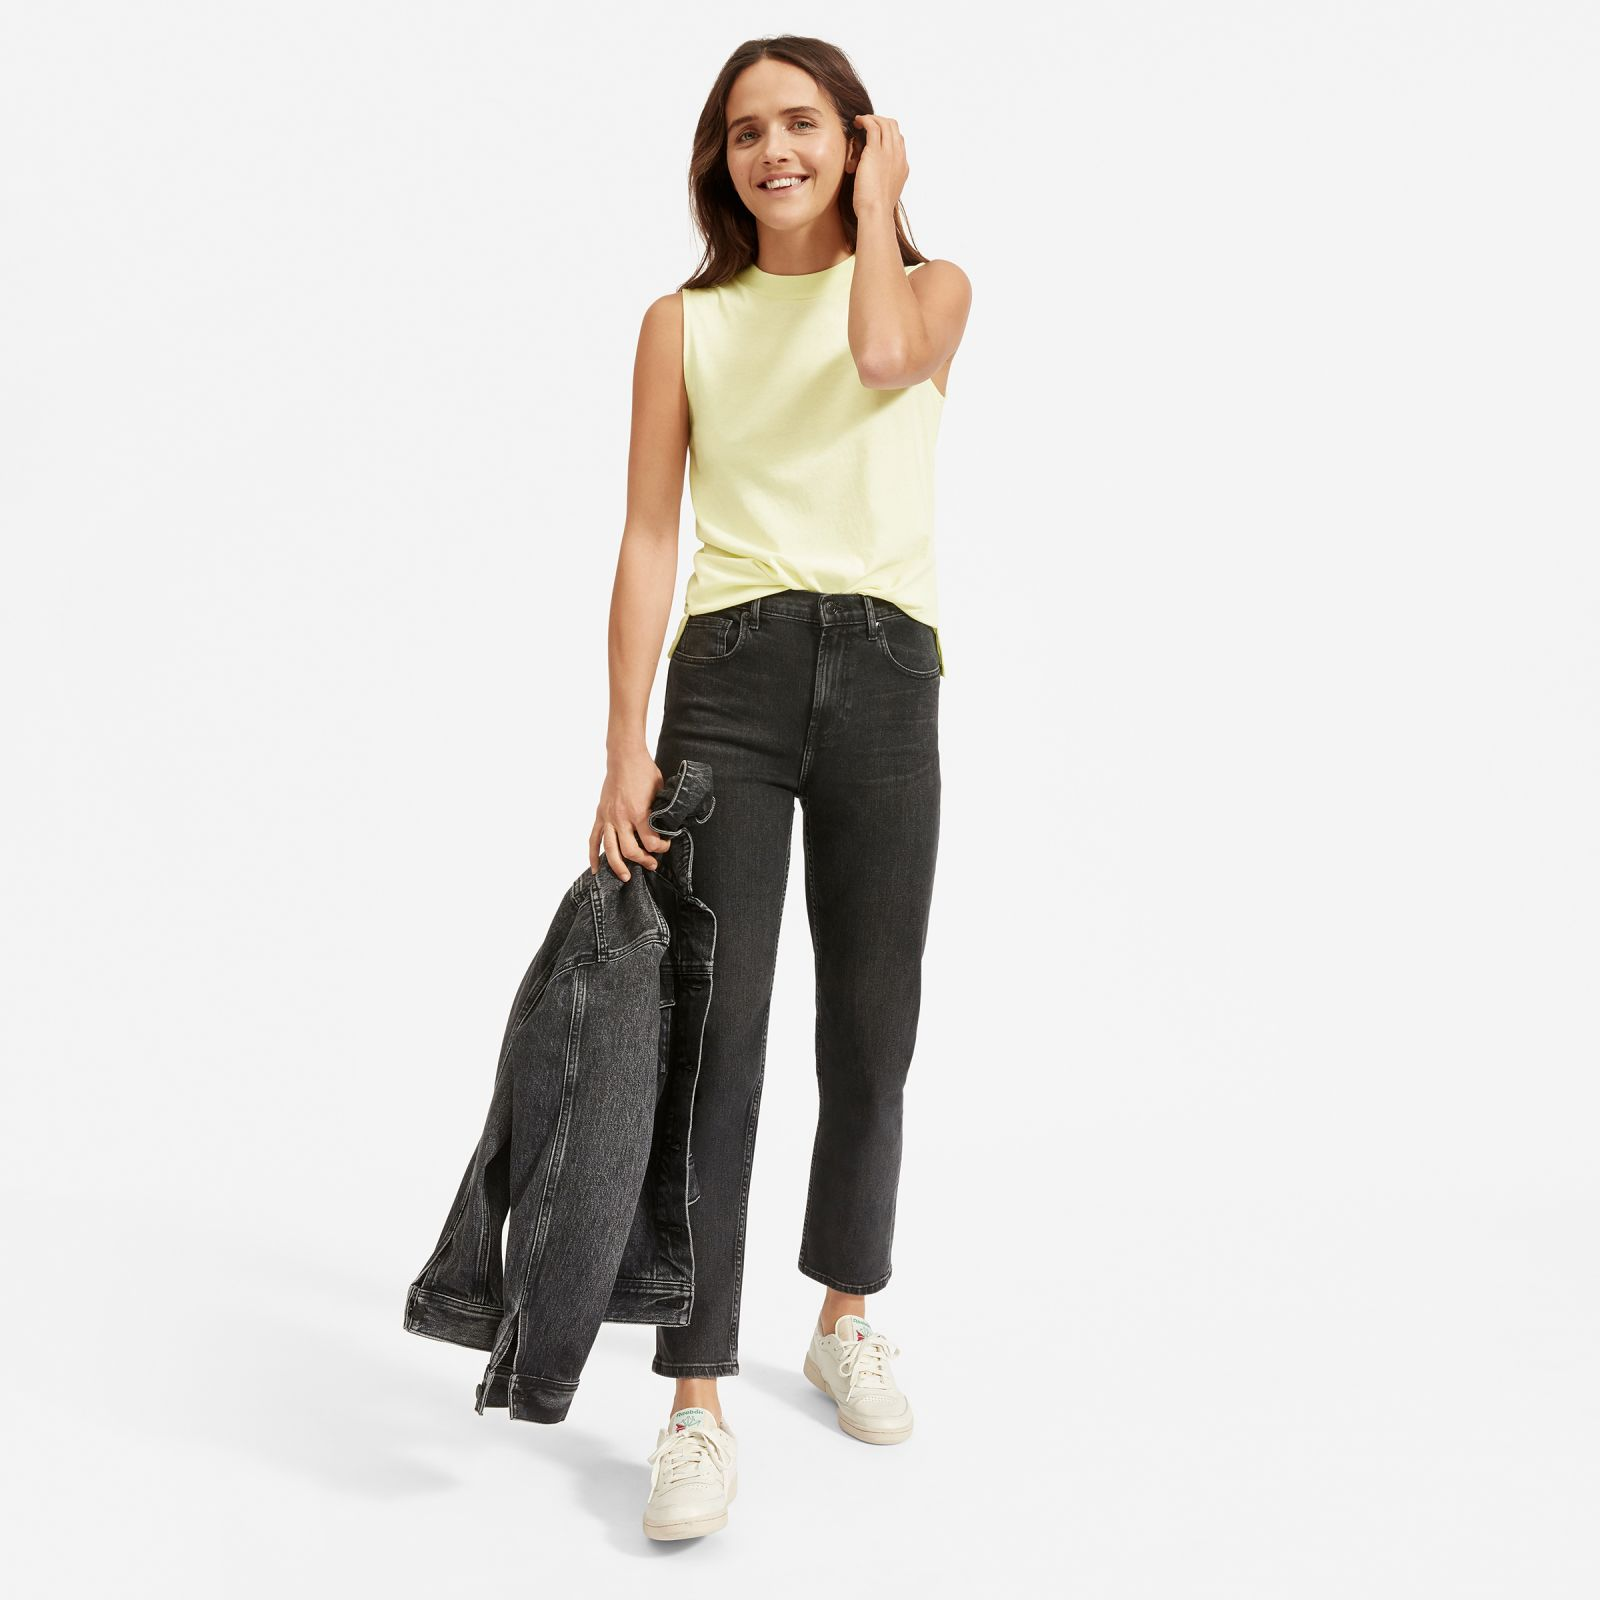 women's cotton mockneck muscle tank sweater by everlane in pale yellow, size xl